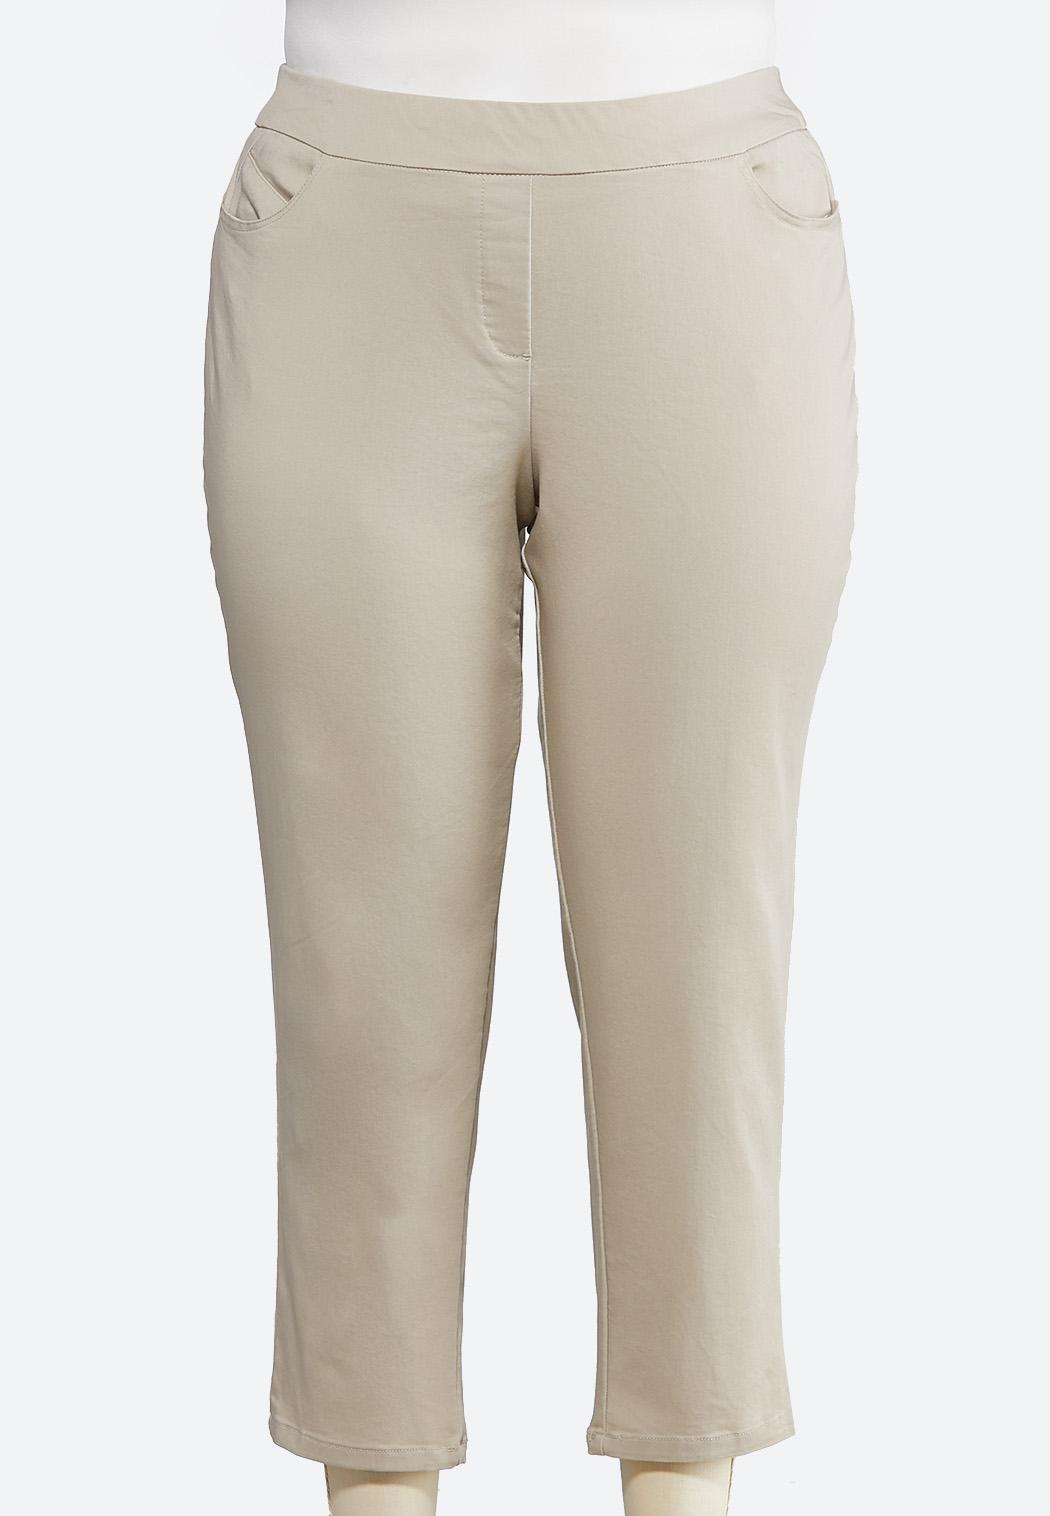 Plus Size Pull-On Ankle Pants Pants Cato Fashions